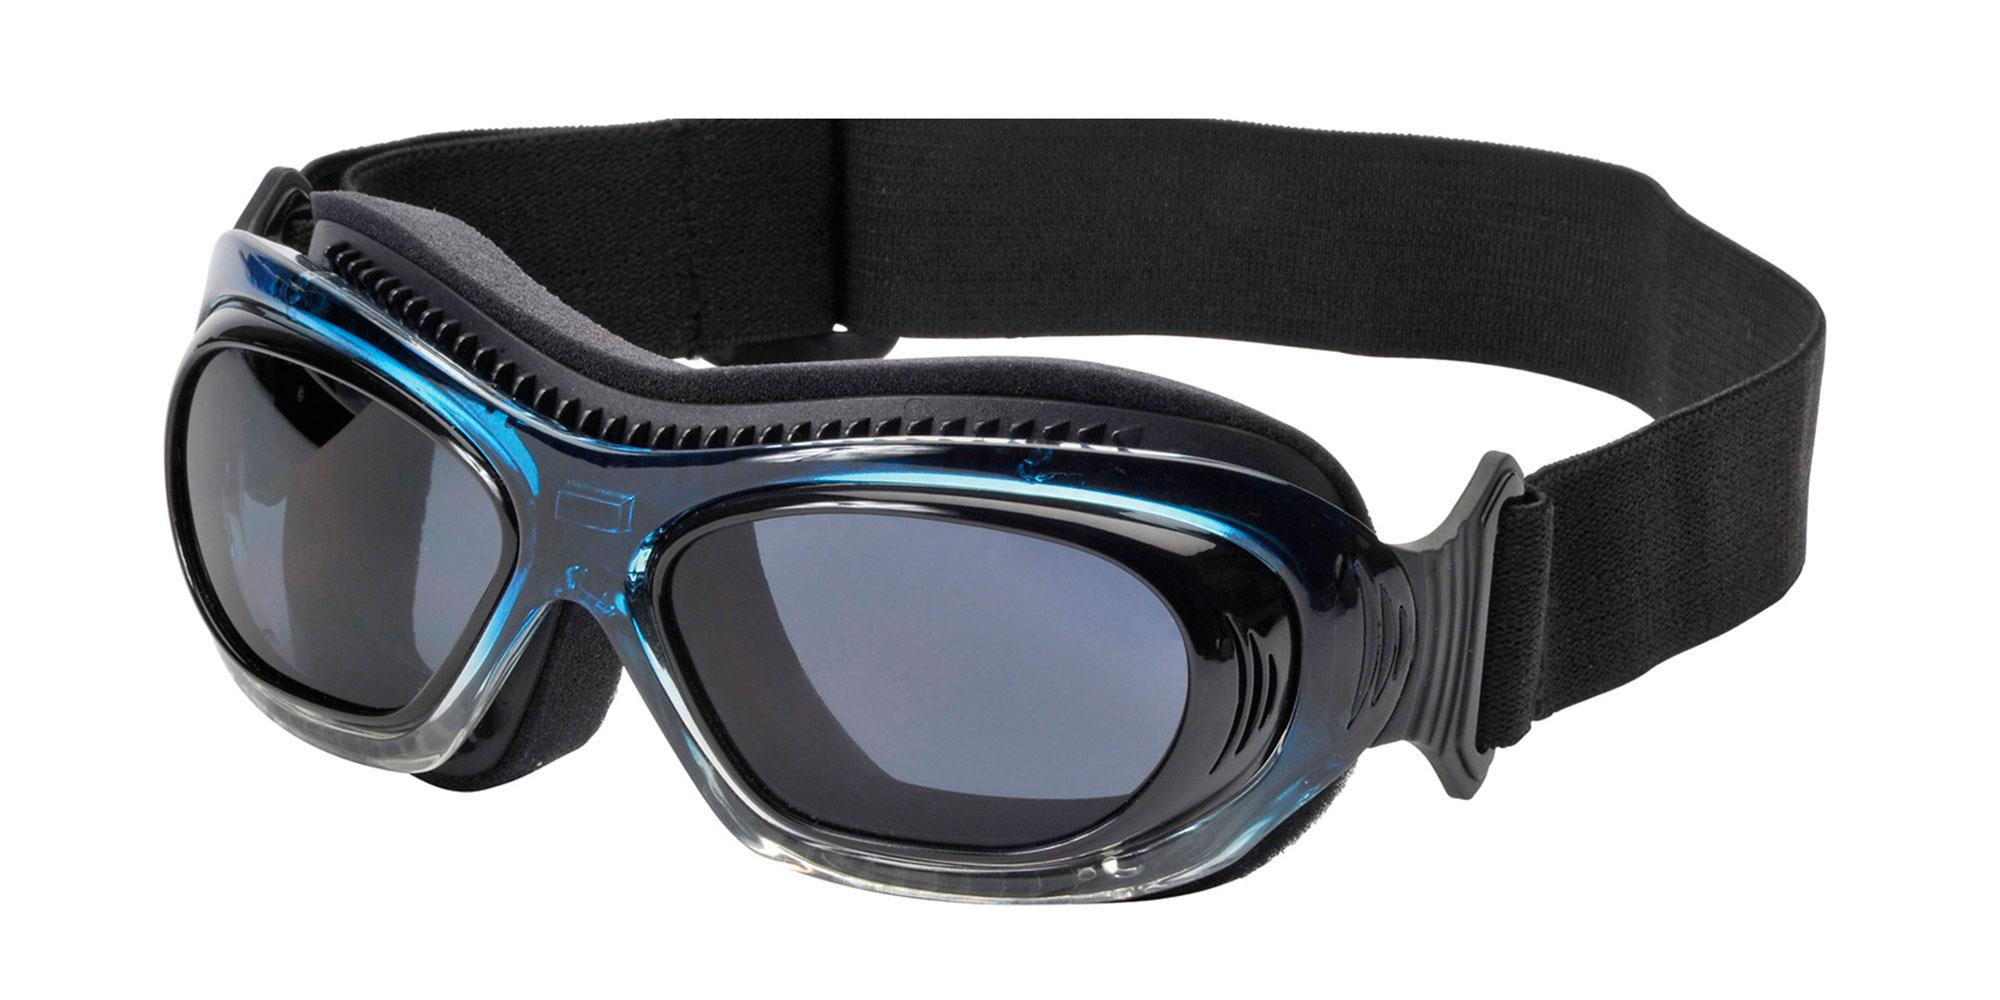 Blue Bling Boarding Goggle Goggles, Sports Eyewear